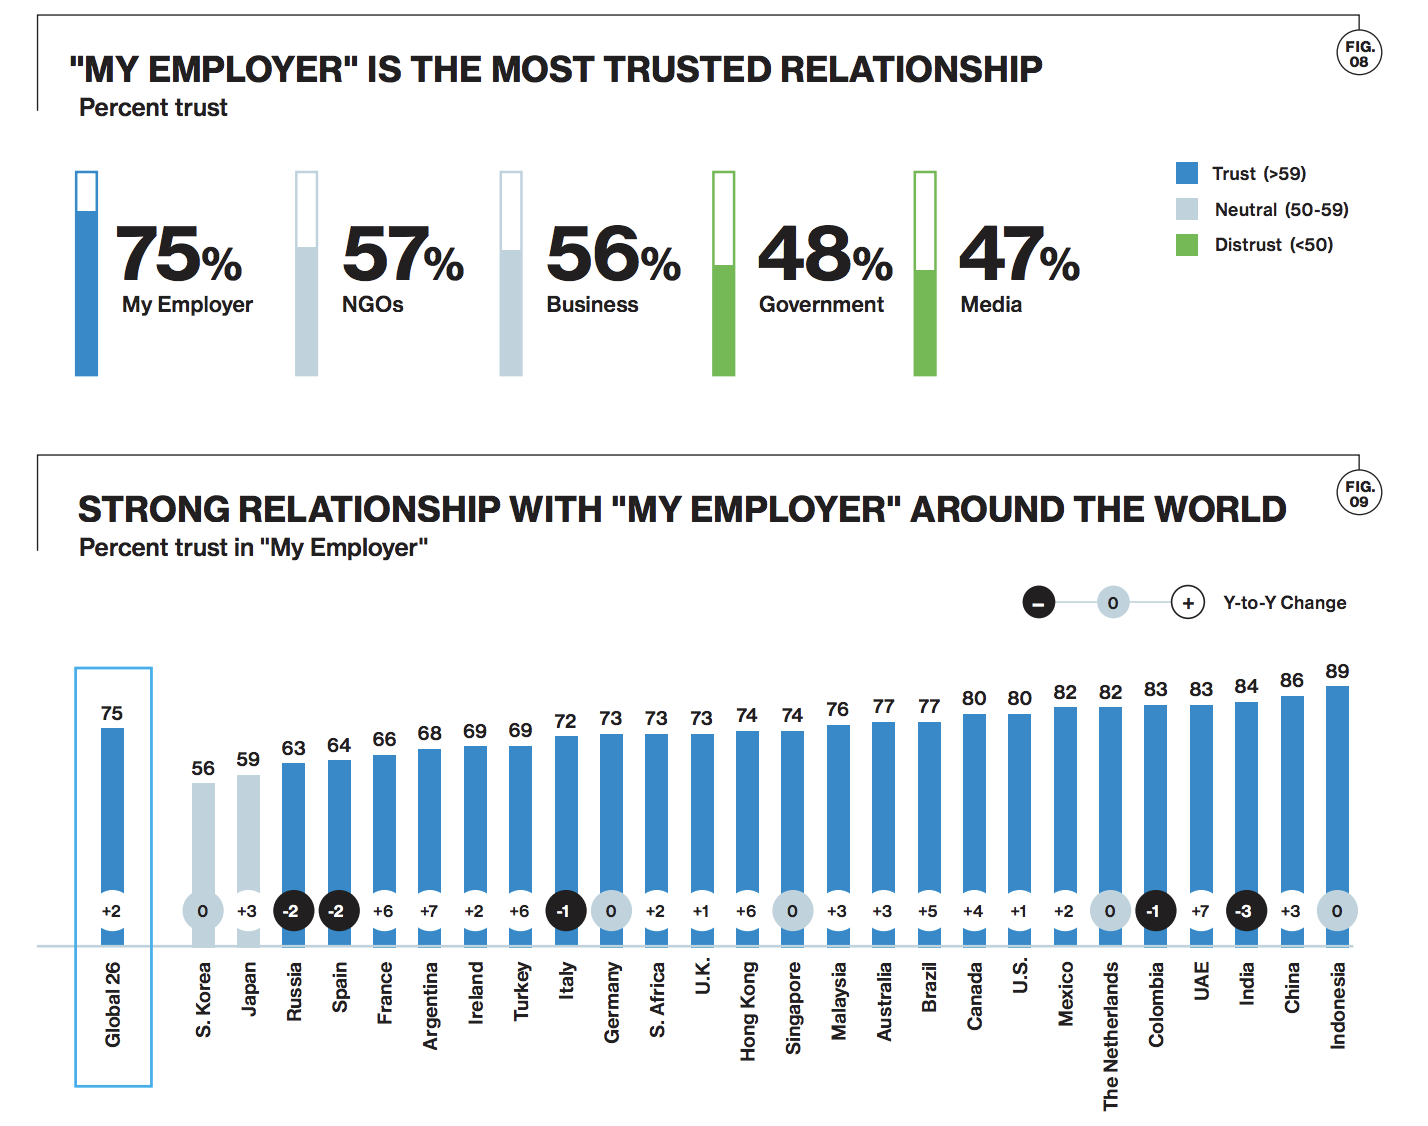 people trust their employer more than any other institution around the world